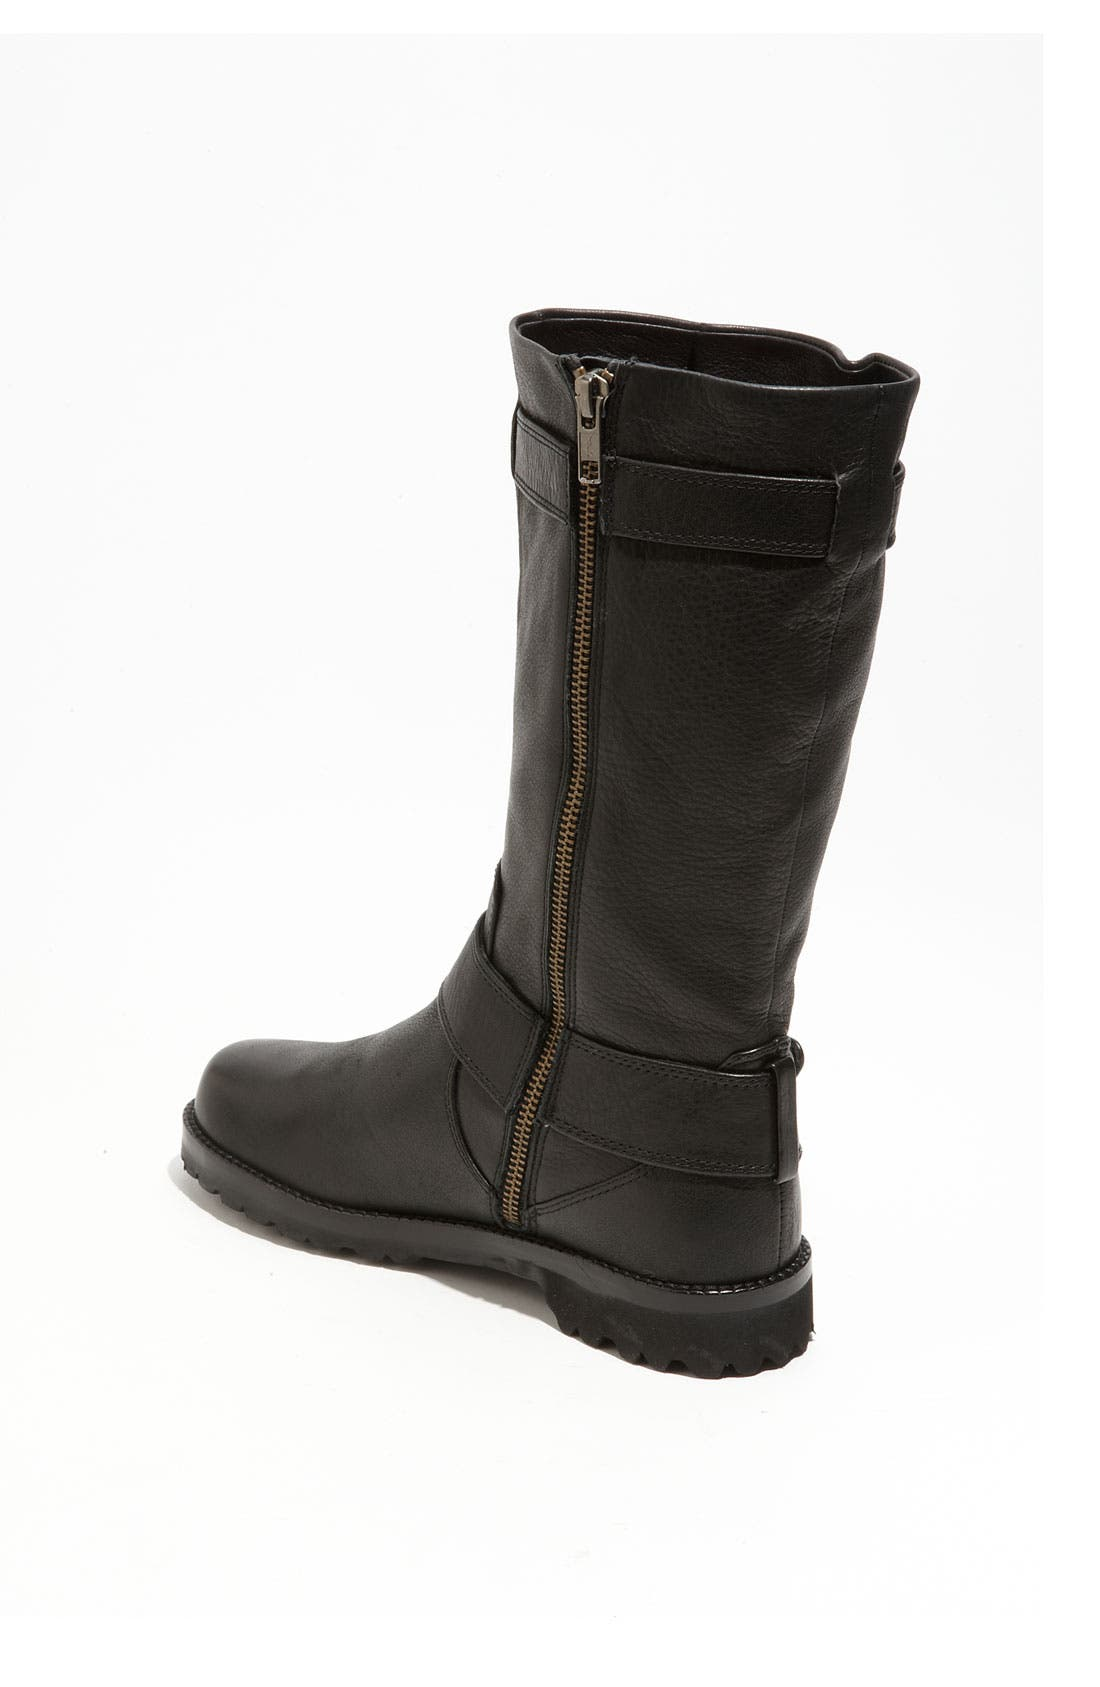 by Kenneth Cole 'Buckled Up' Boot,                             Alternate thumbnail 10, color,                             BLACK